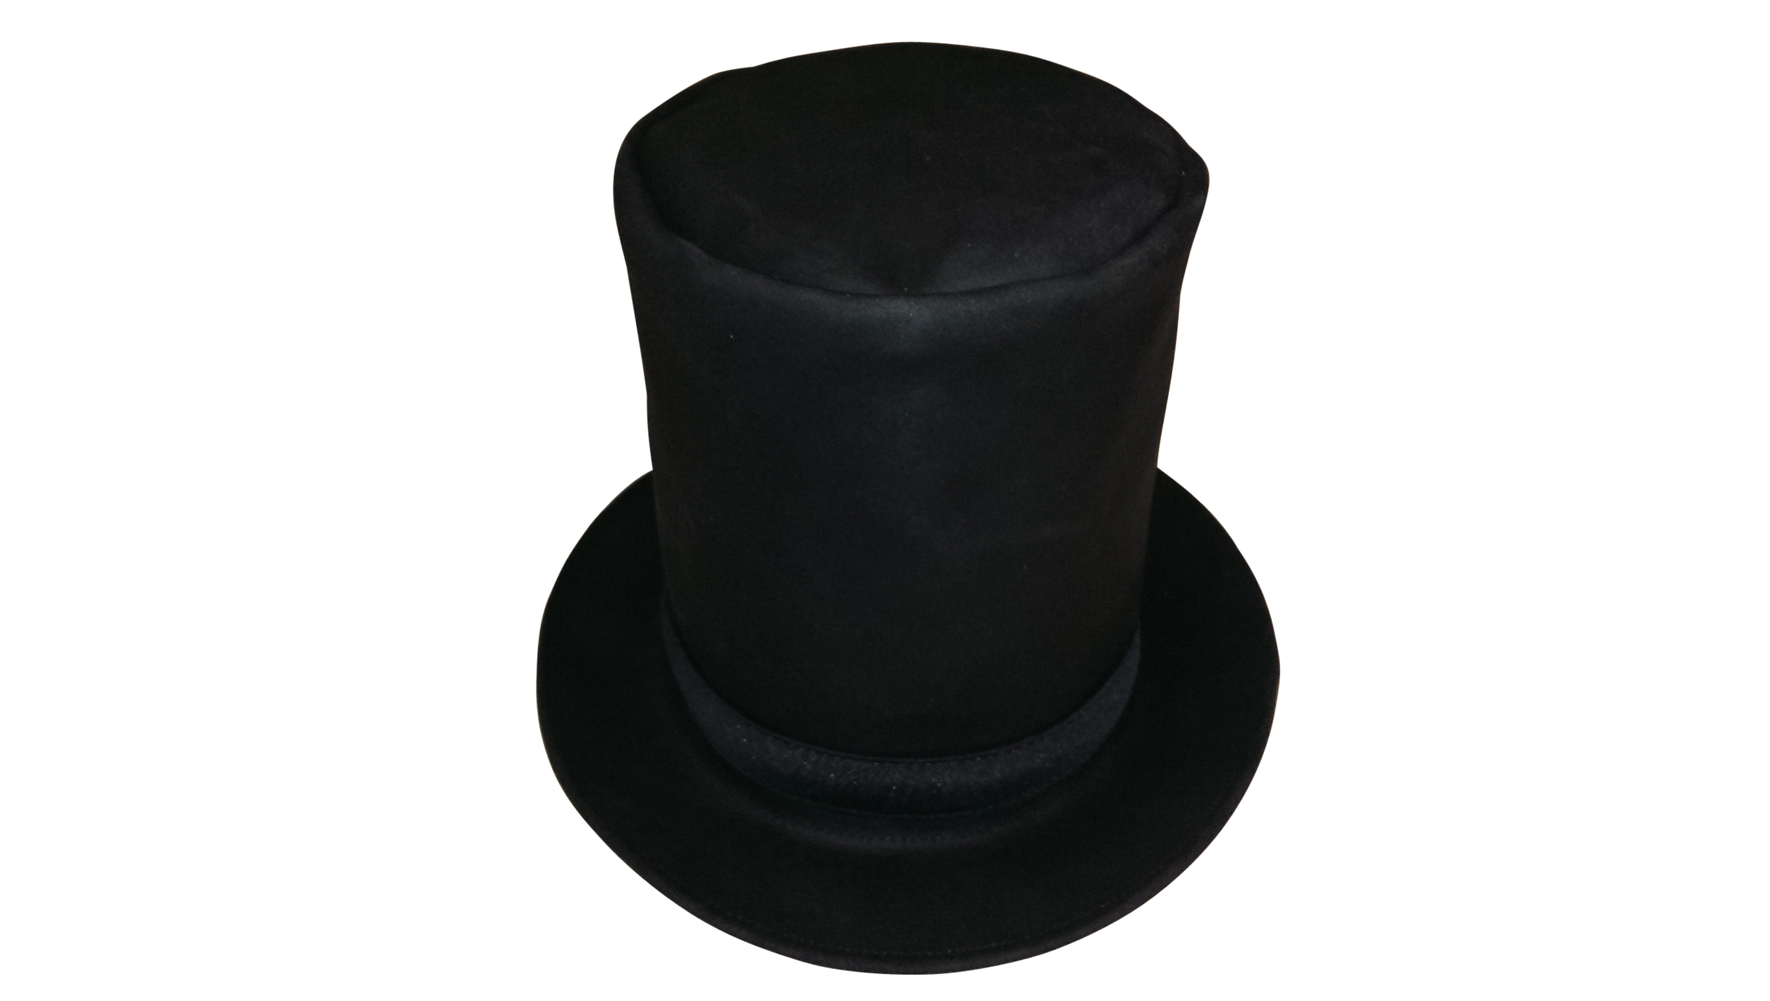 Top hat fireplace chimney 28 images 18 0cm 7 1inch steunk mad top teraionfo